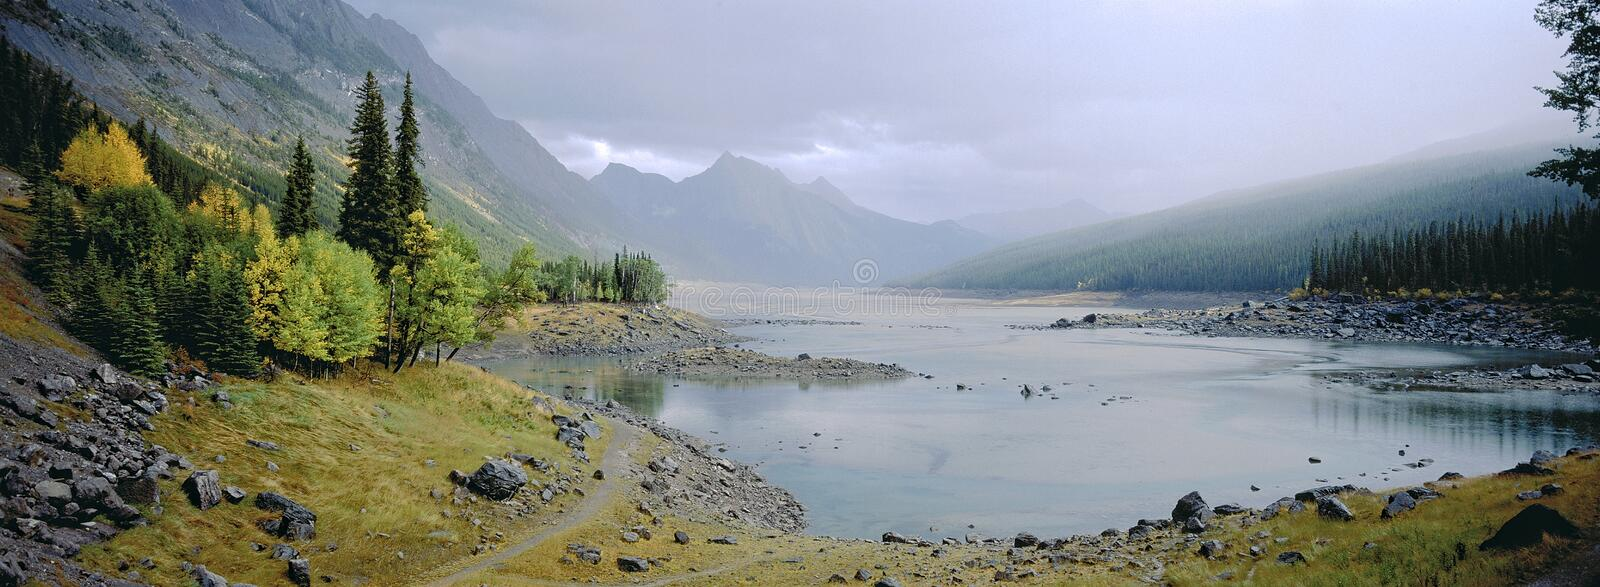 Panoramic landscape of misty lake with autumn foliage royalty free stock image